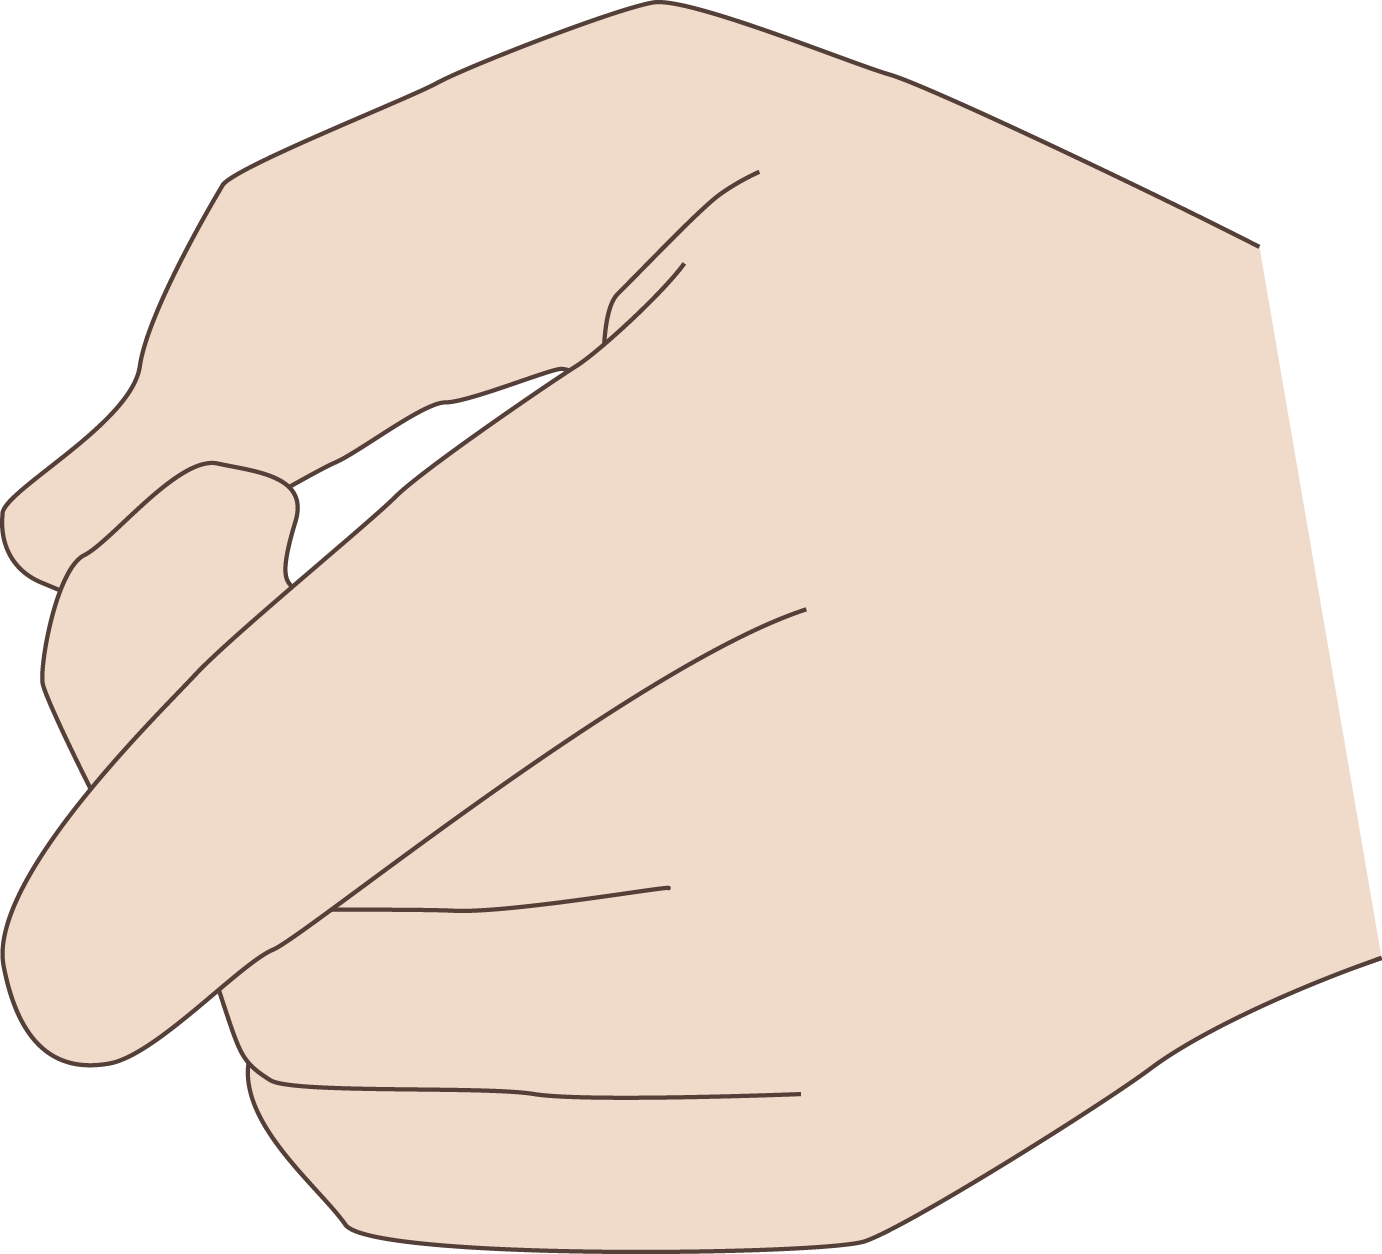 Coding manual shape library. Finger clipart hand span